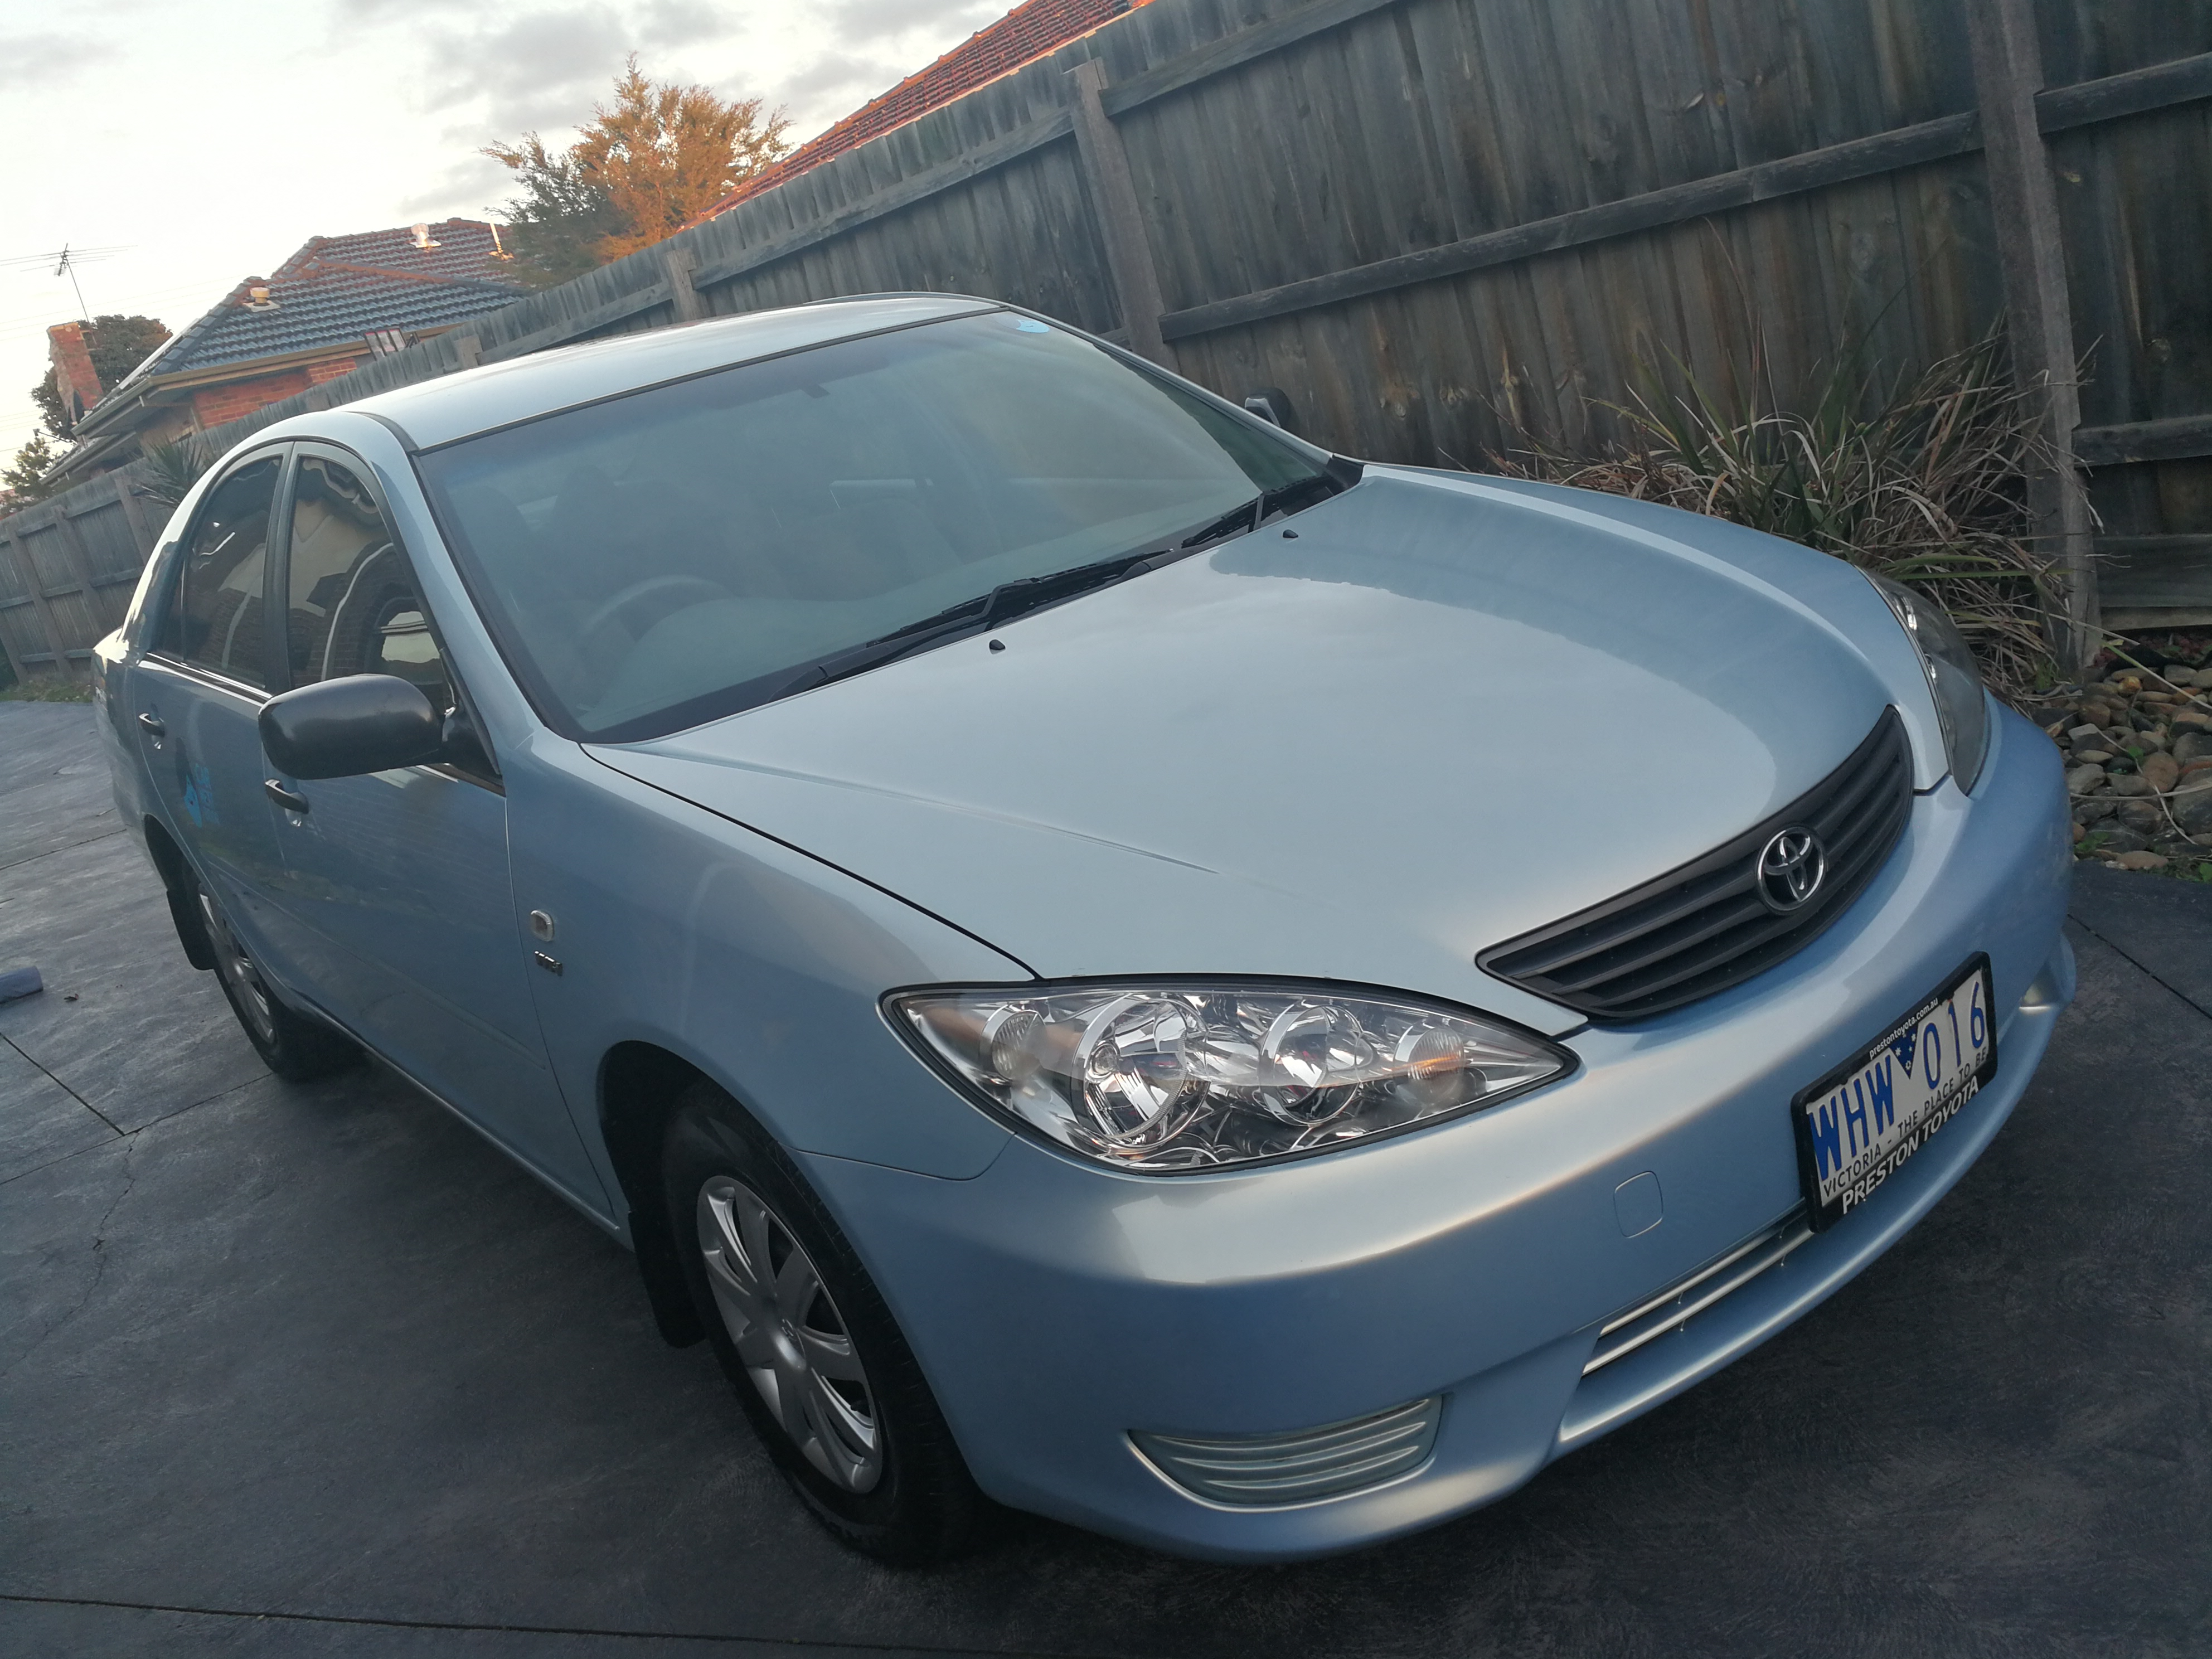 Picture of Lei's 2005 Toyota Camry